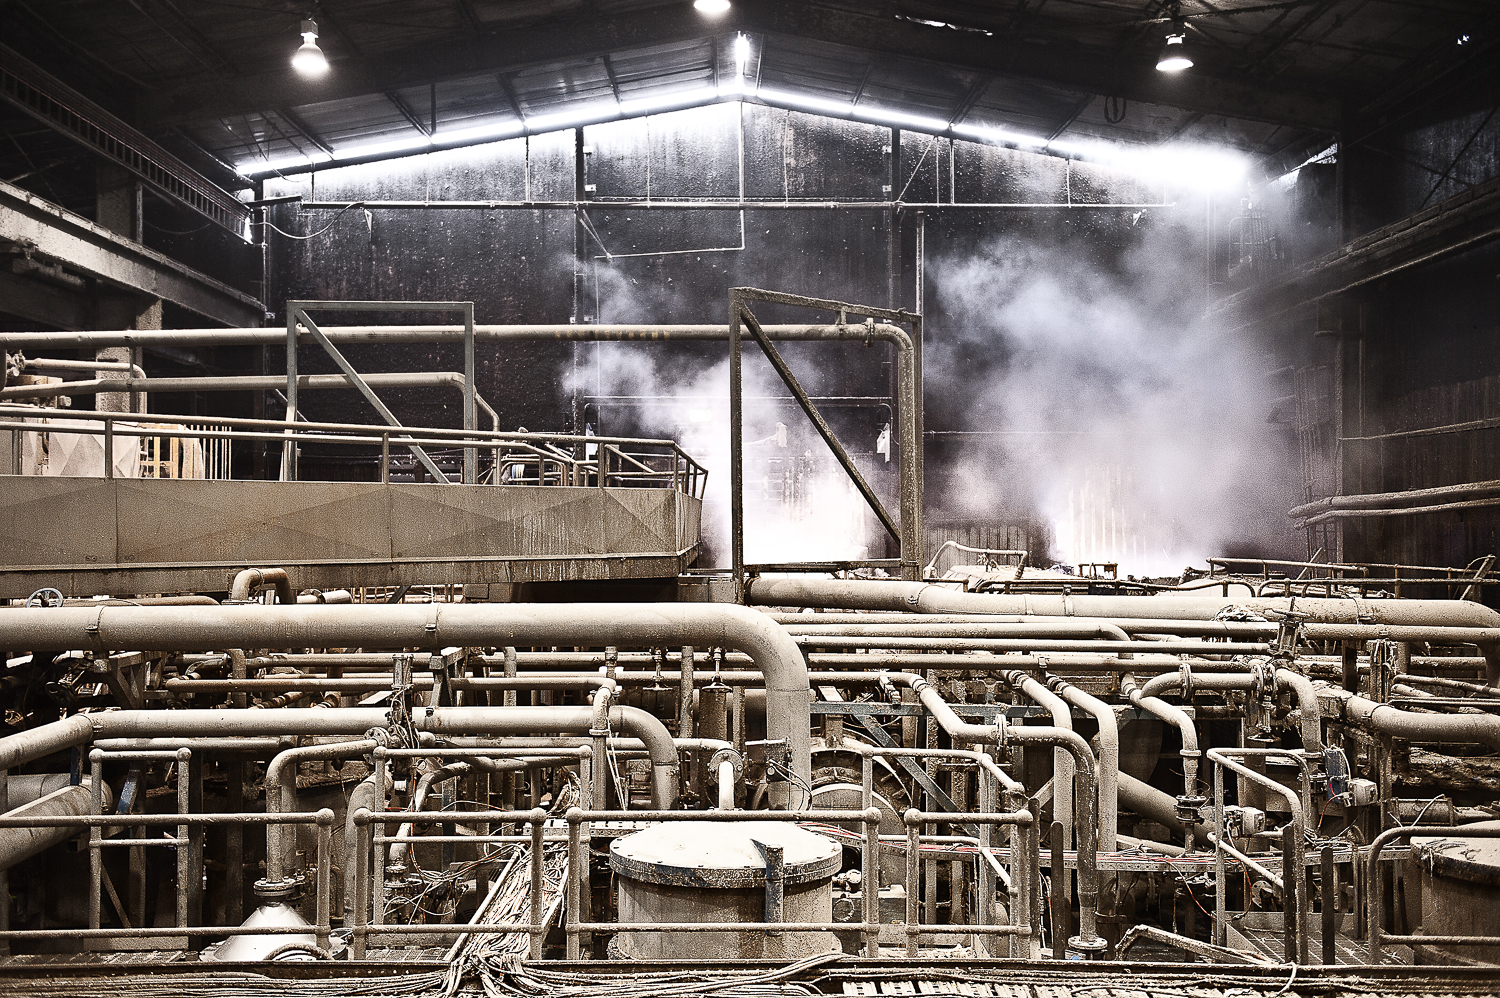 Australian Paper is the only Australian manufacturer of office, printing and packaging papers. Australian Paper directly employs 1,294 people and manufactures more than 600,000 tonnes of paper annually for Australia, New Zealand and export markets.[1] It has two manufacturing facilities: the Maryvale Mill (Latrobe Valley, Victoria) and the Preston manufacturing facility (Preston, Victoria).[2]  Australian Paper was purchased from Paperlinx by Japan-based Nippon Paper Group in June 2009.[3]  In February 2015 Australian Paper announced the closure of the Shoalhaven Paper Mill in Nowra, NSW.[4] The mill closed in July 2015.[5]  In April 2015 Australian Paper opened a new A$90 million paper recycling plant at the Maryvale Mill. The plant can process up to 80,000 tonnes of wastepaper a year.  Norske Skog (Australasia) Pty Ltd.  The Sydney sales office is responsible for the supply of approx 600,000 tonnes of paper to publishers and commercial printers throughout Australia. Publication papers available are newsprint, high white 'improved newsprint', book and directory papers from the Albury, Boyer and Tasman mills together with supercalendered grades and coated paper from Norske Skog's European mills.  Norske Skog has the privilege of supplying the bulk of the total newspaper publishing paper requirements for both metropolitan and regional publishers throughout the country.  Considerable innovation in logistics and service systems together with regular upgrading of paper machines has lead to highly efficient and effective supply capabilities on a sustainable basis.  Stewart Donn Photography.  A Melbourne based photographer specialising in all Corporate, Commercial, Industrial and Product photography.  Specialising in this type of photography allows Stewart to make complicated corporate and industrial scenes, and the people in these scenes, look heroic, interesting and beautiful.  Based in Melbourne's Western suburbs.  Stewart has worked and is comfortable working with, sm